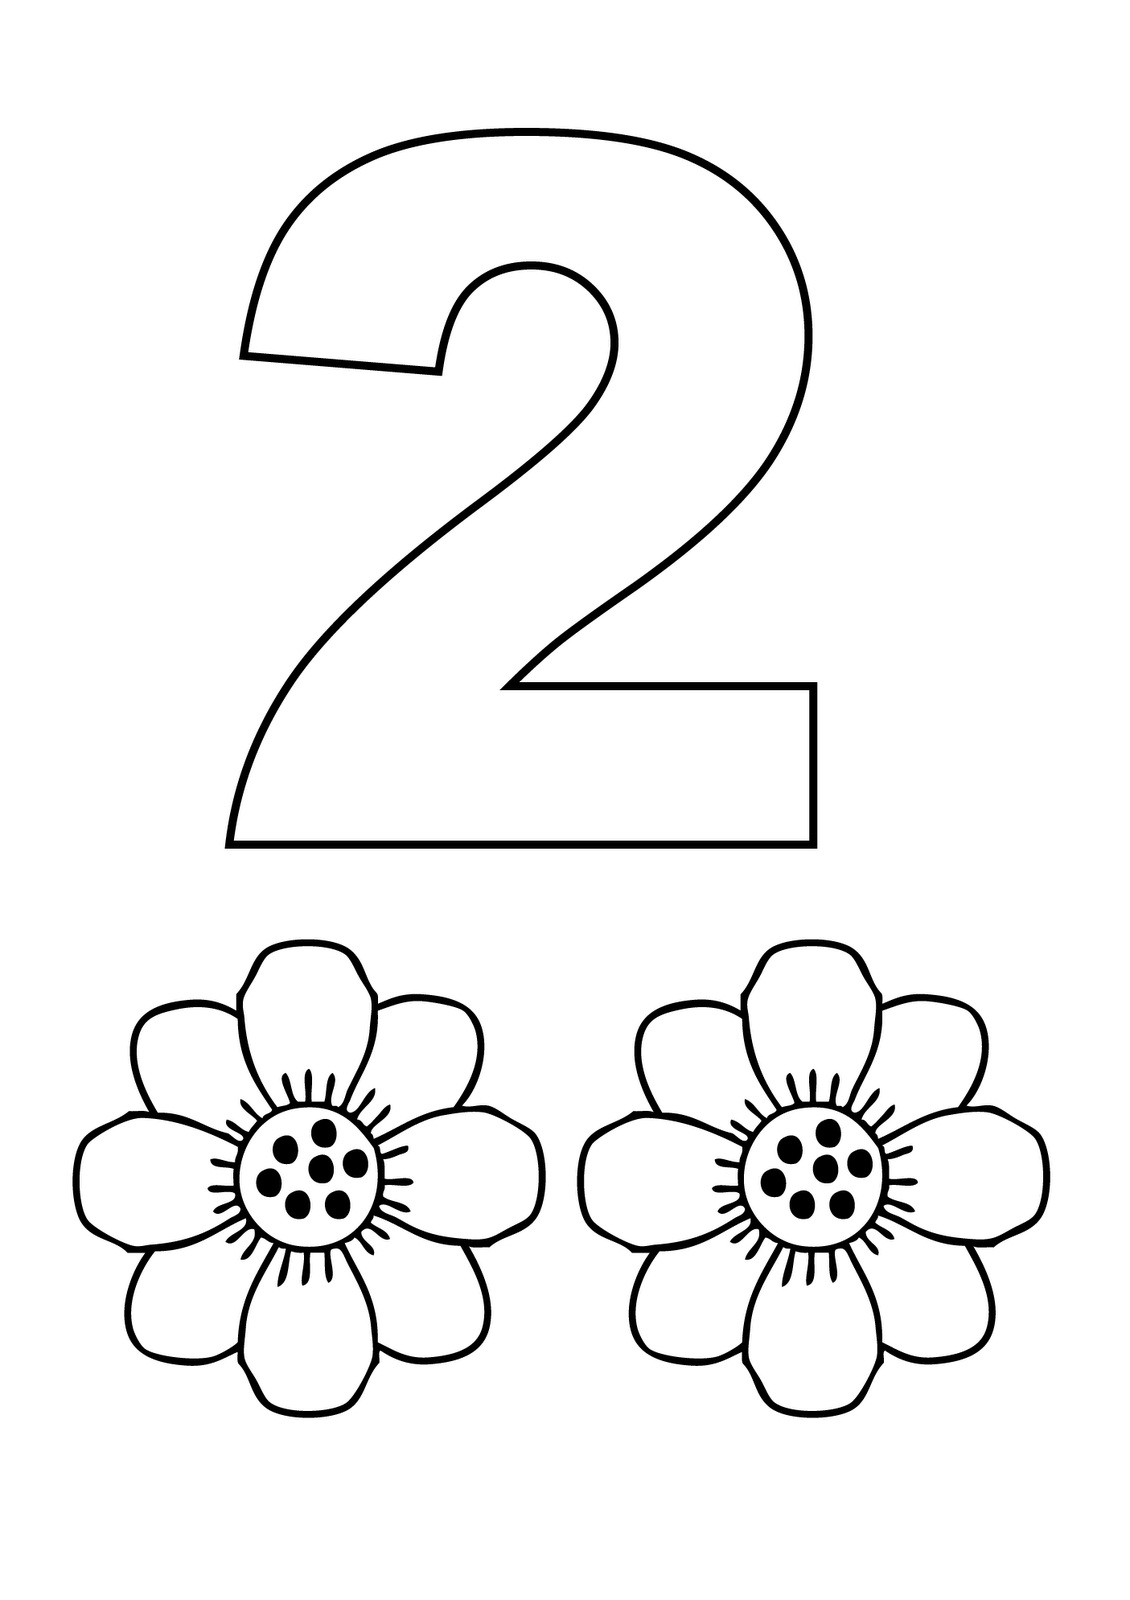 coloring page 2 free coloring pages printable fun number two coloring pages page coloring 2